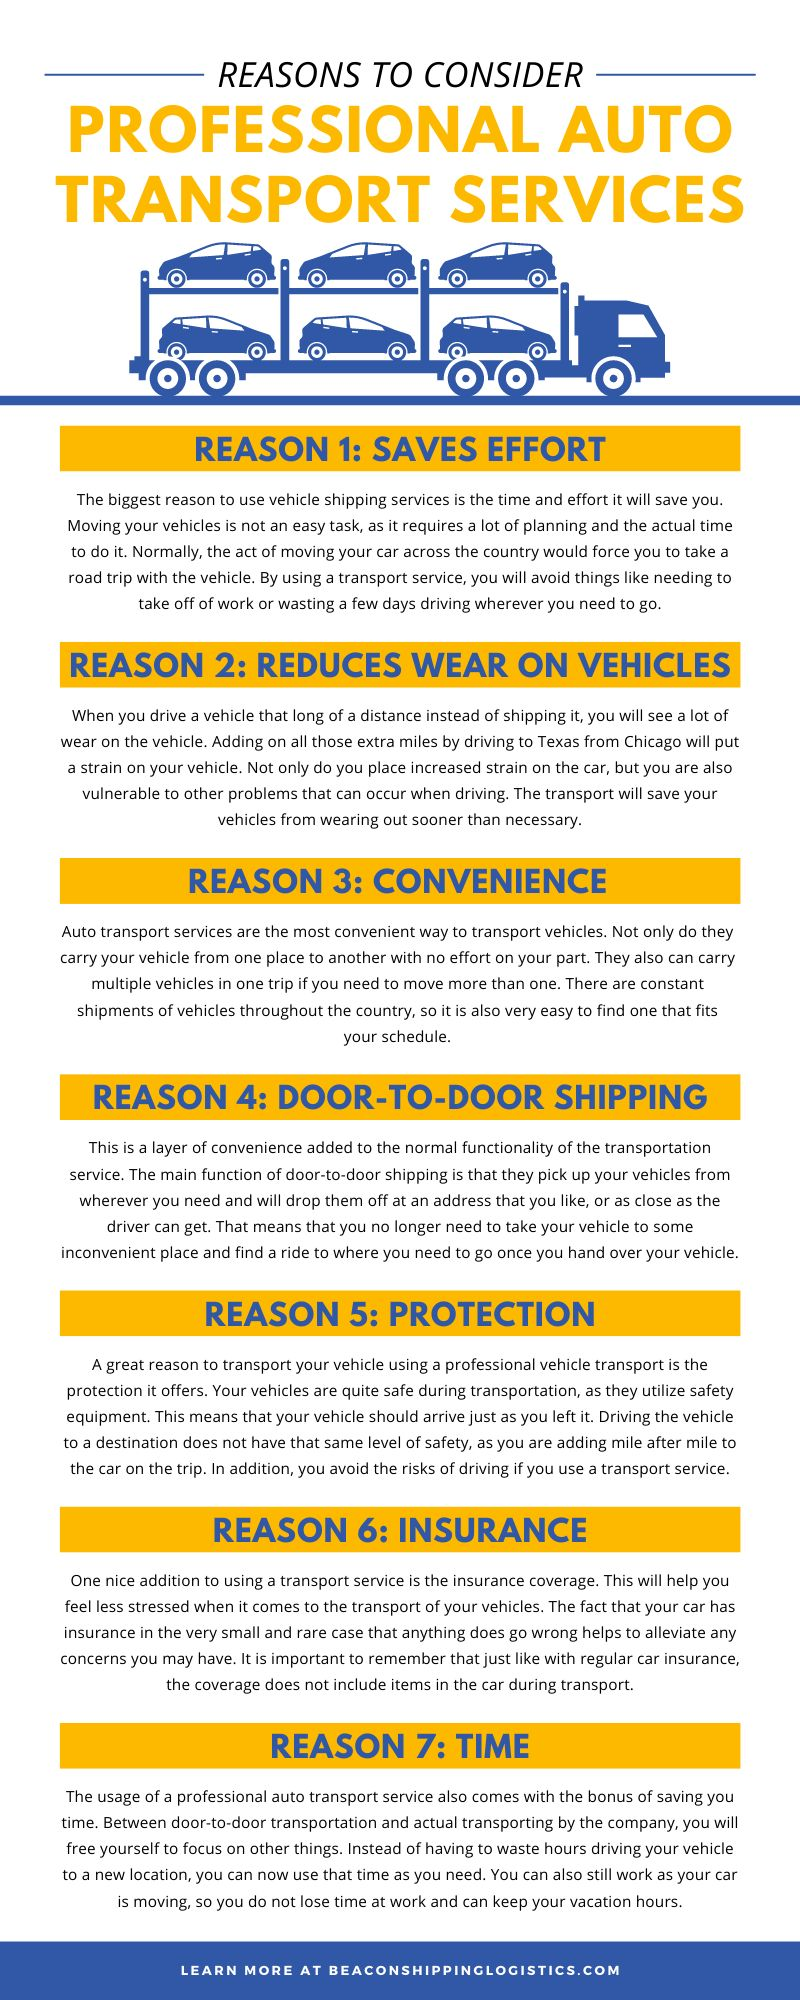 Reasons To Consider Professional Auto Transport Services